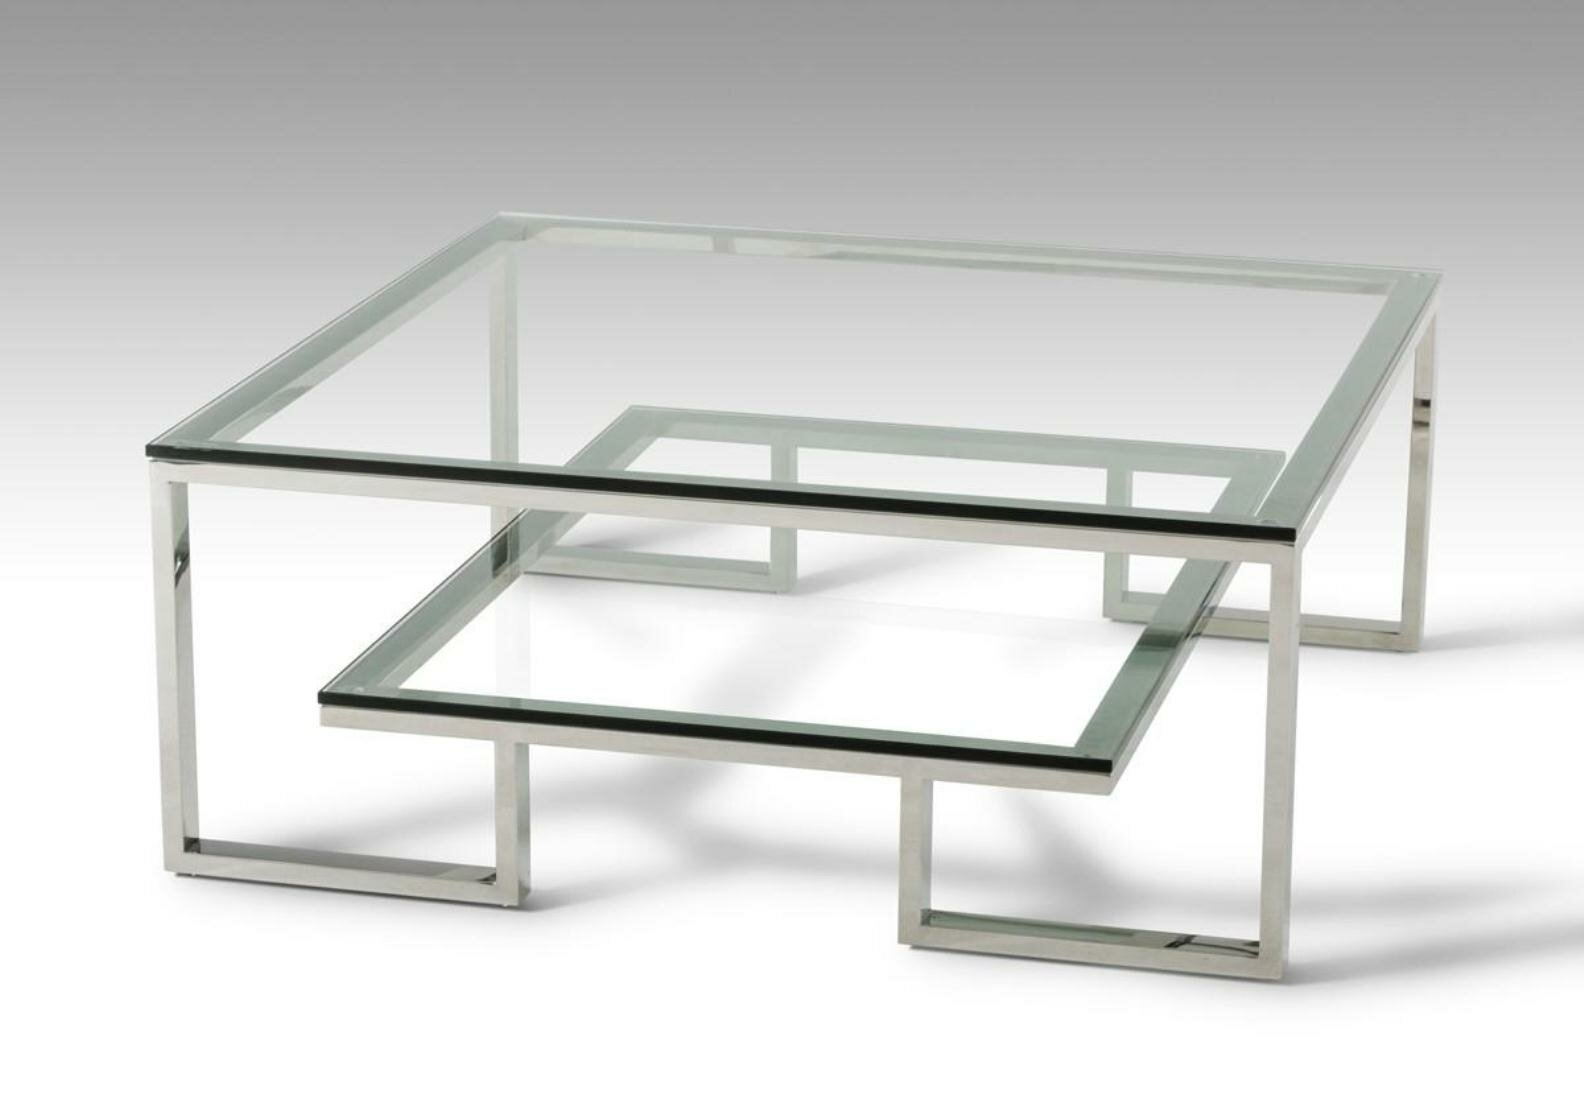 Charmant Square Glass Coffee Table Contemporary 1